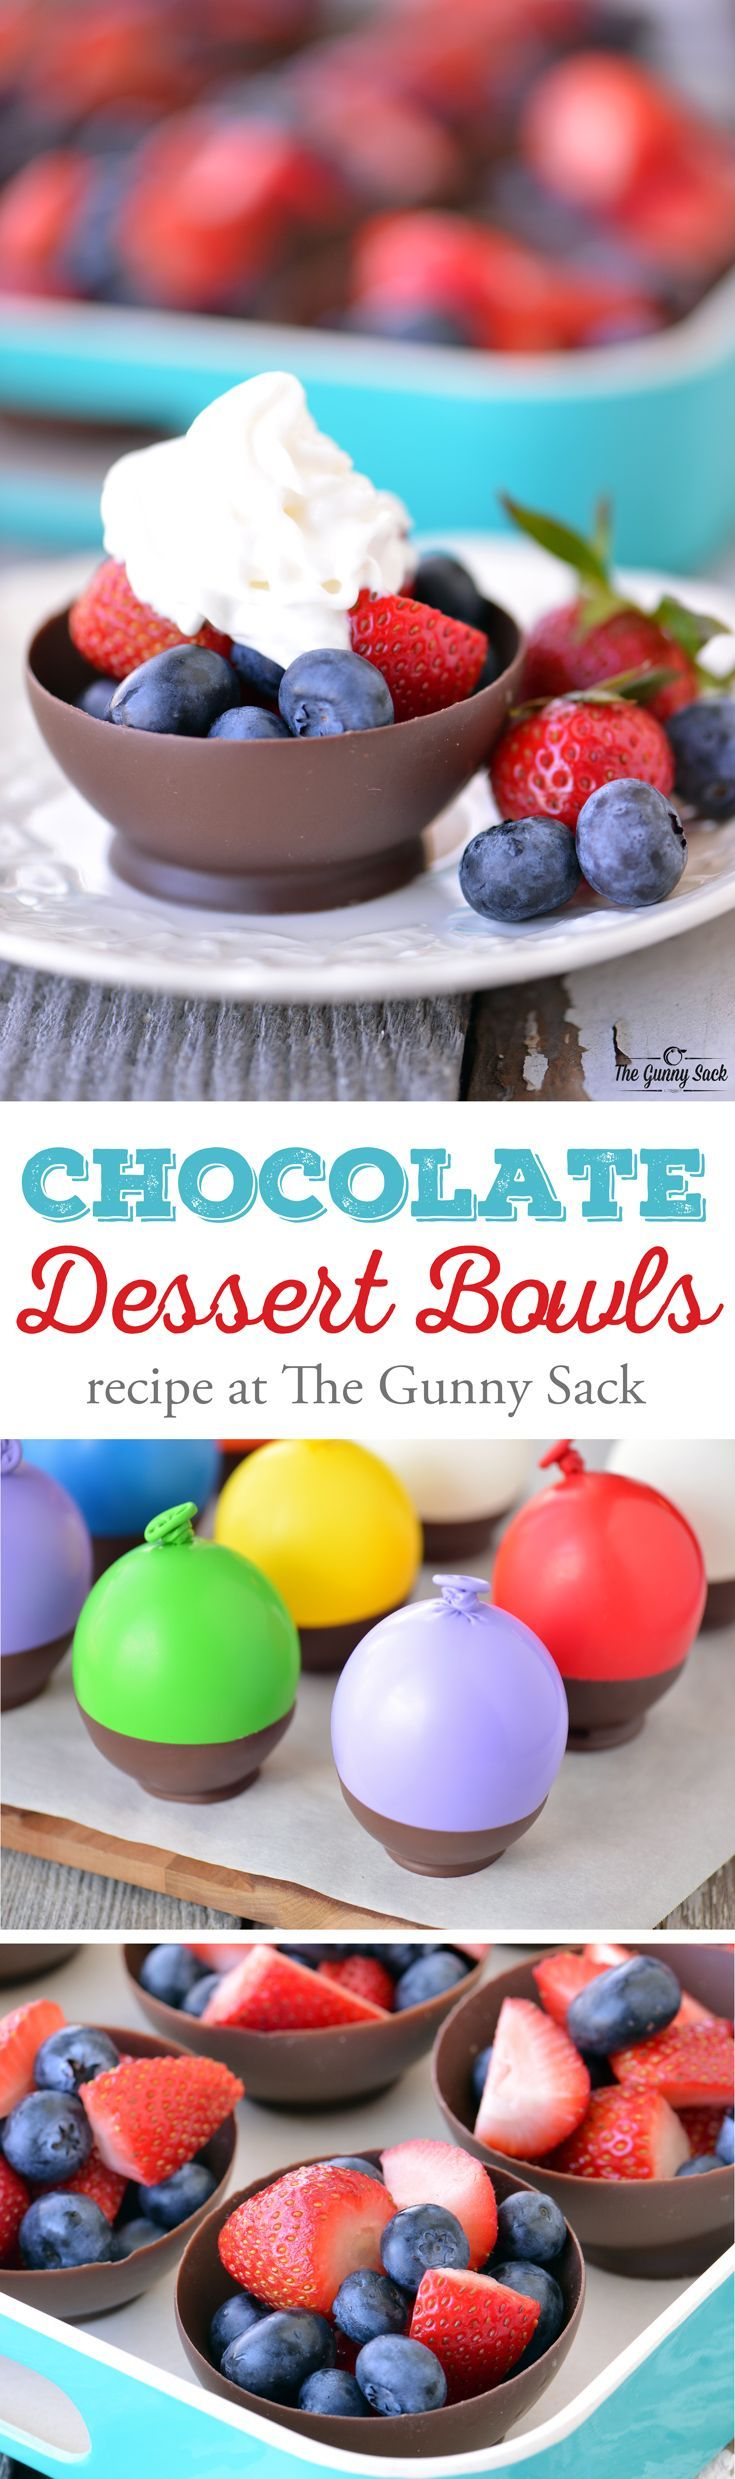 These Chocolate Dessert Bowls are made by dipping balloons in chocolate! The recipe is easy to follow and chocolate bowls can be filled with fresh fruit. @target #TargetCrowd #sponsored